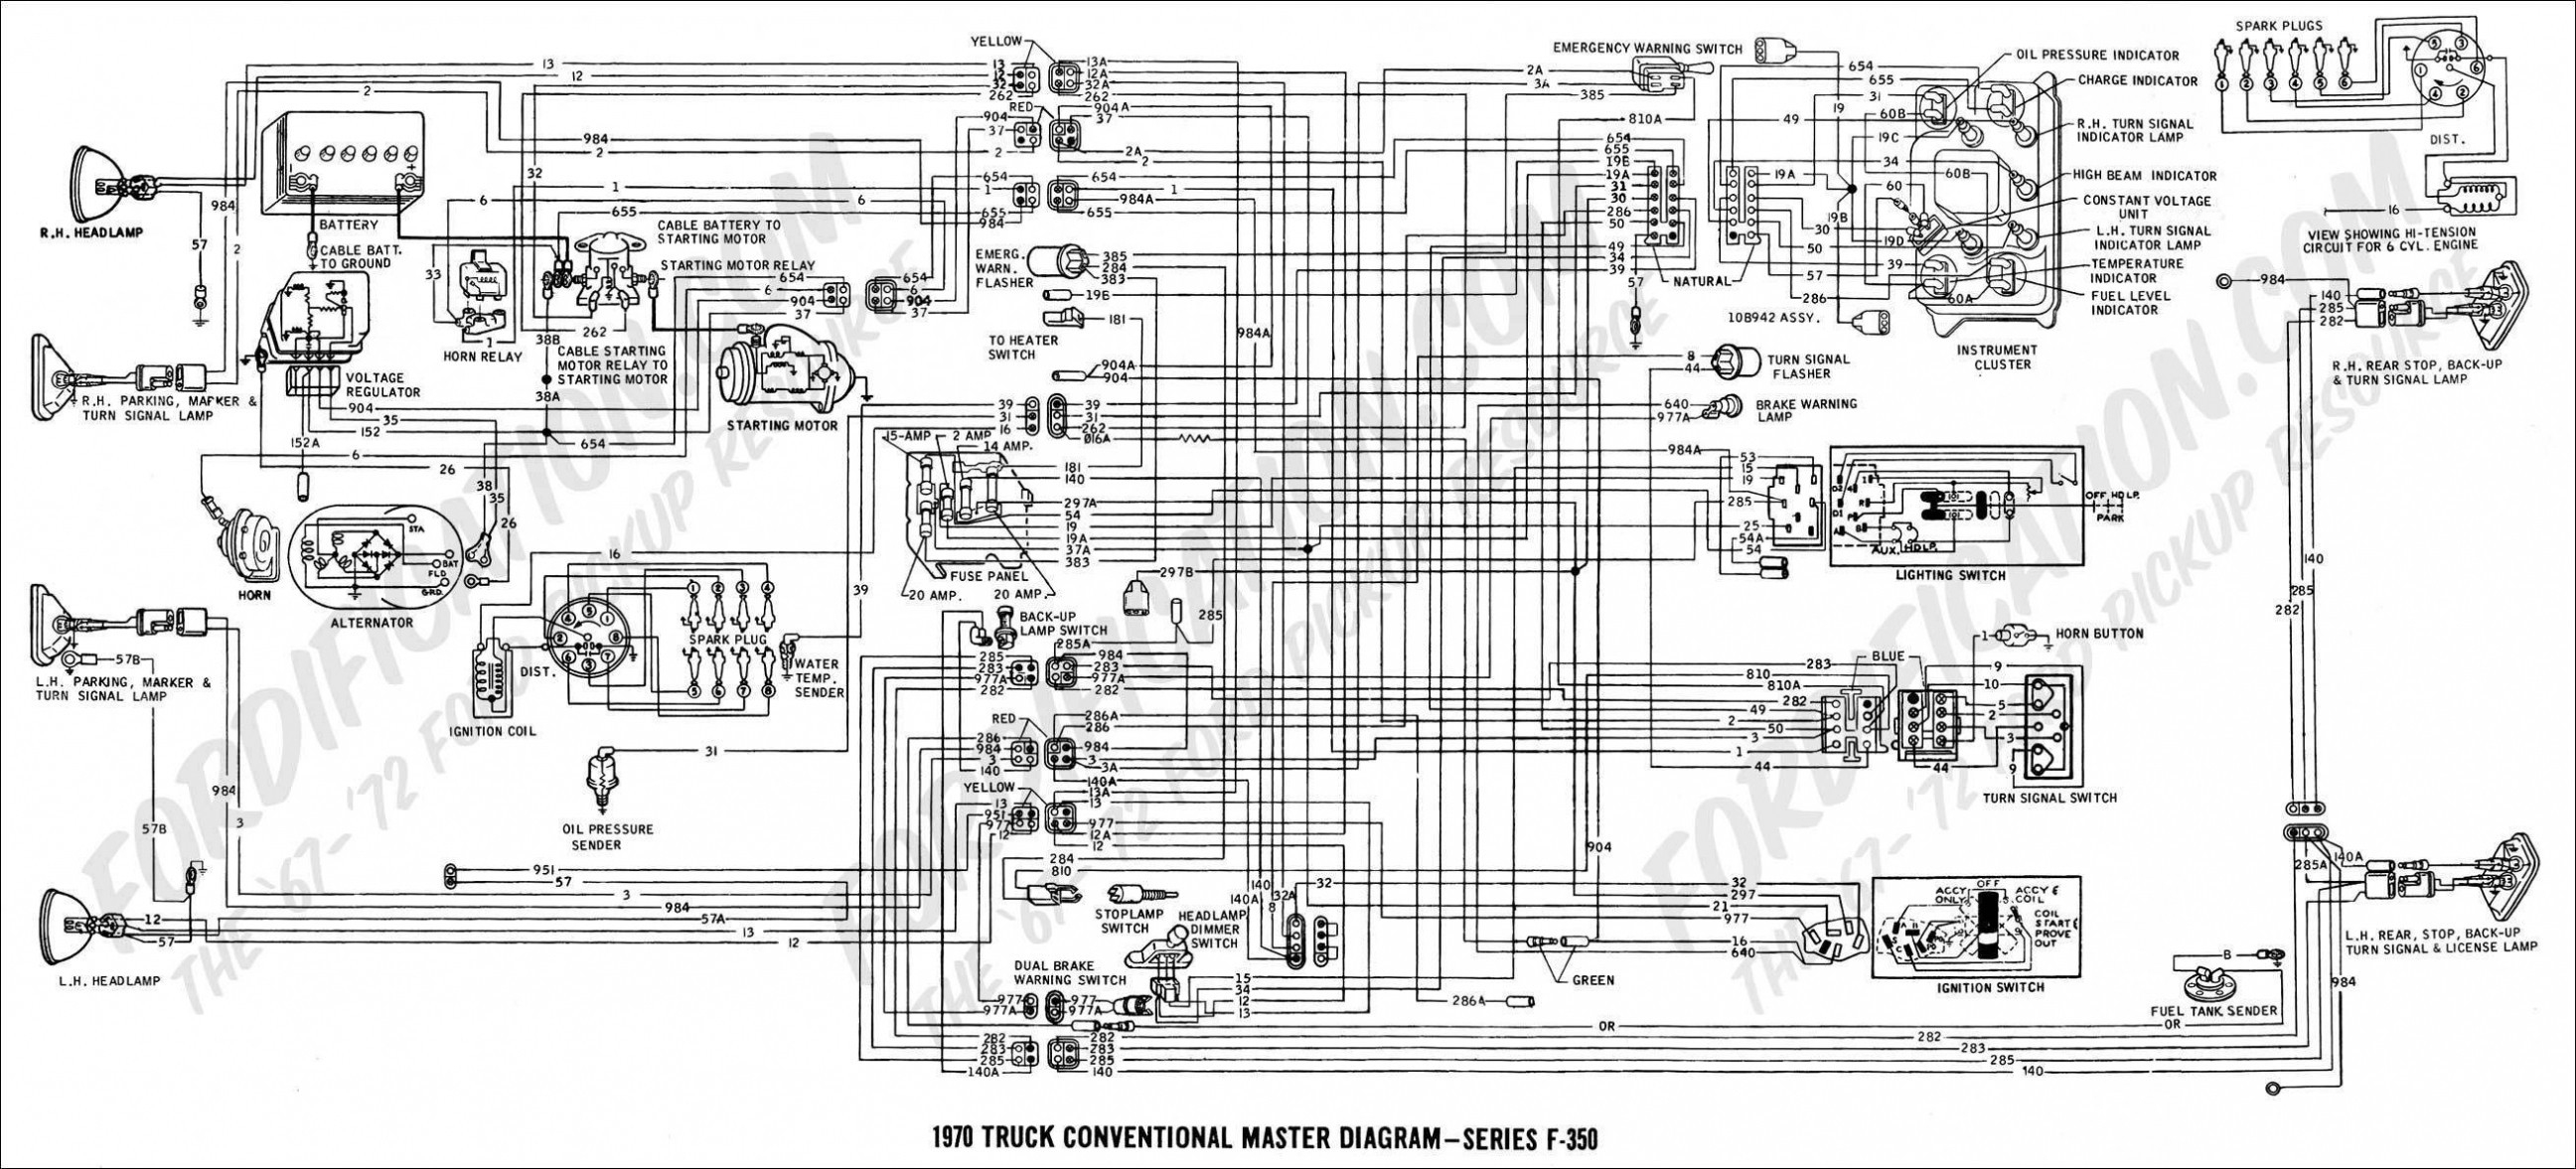 2001 Ford F350 Wiring Diagrams - All Wiring Diagram Data - 2008 Ford Super Duty Trailer Wiring Diagram